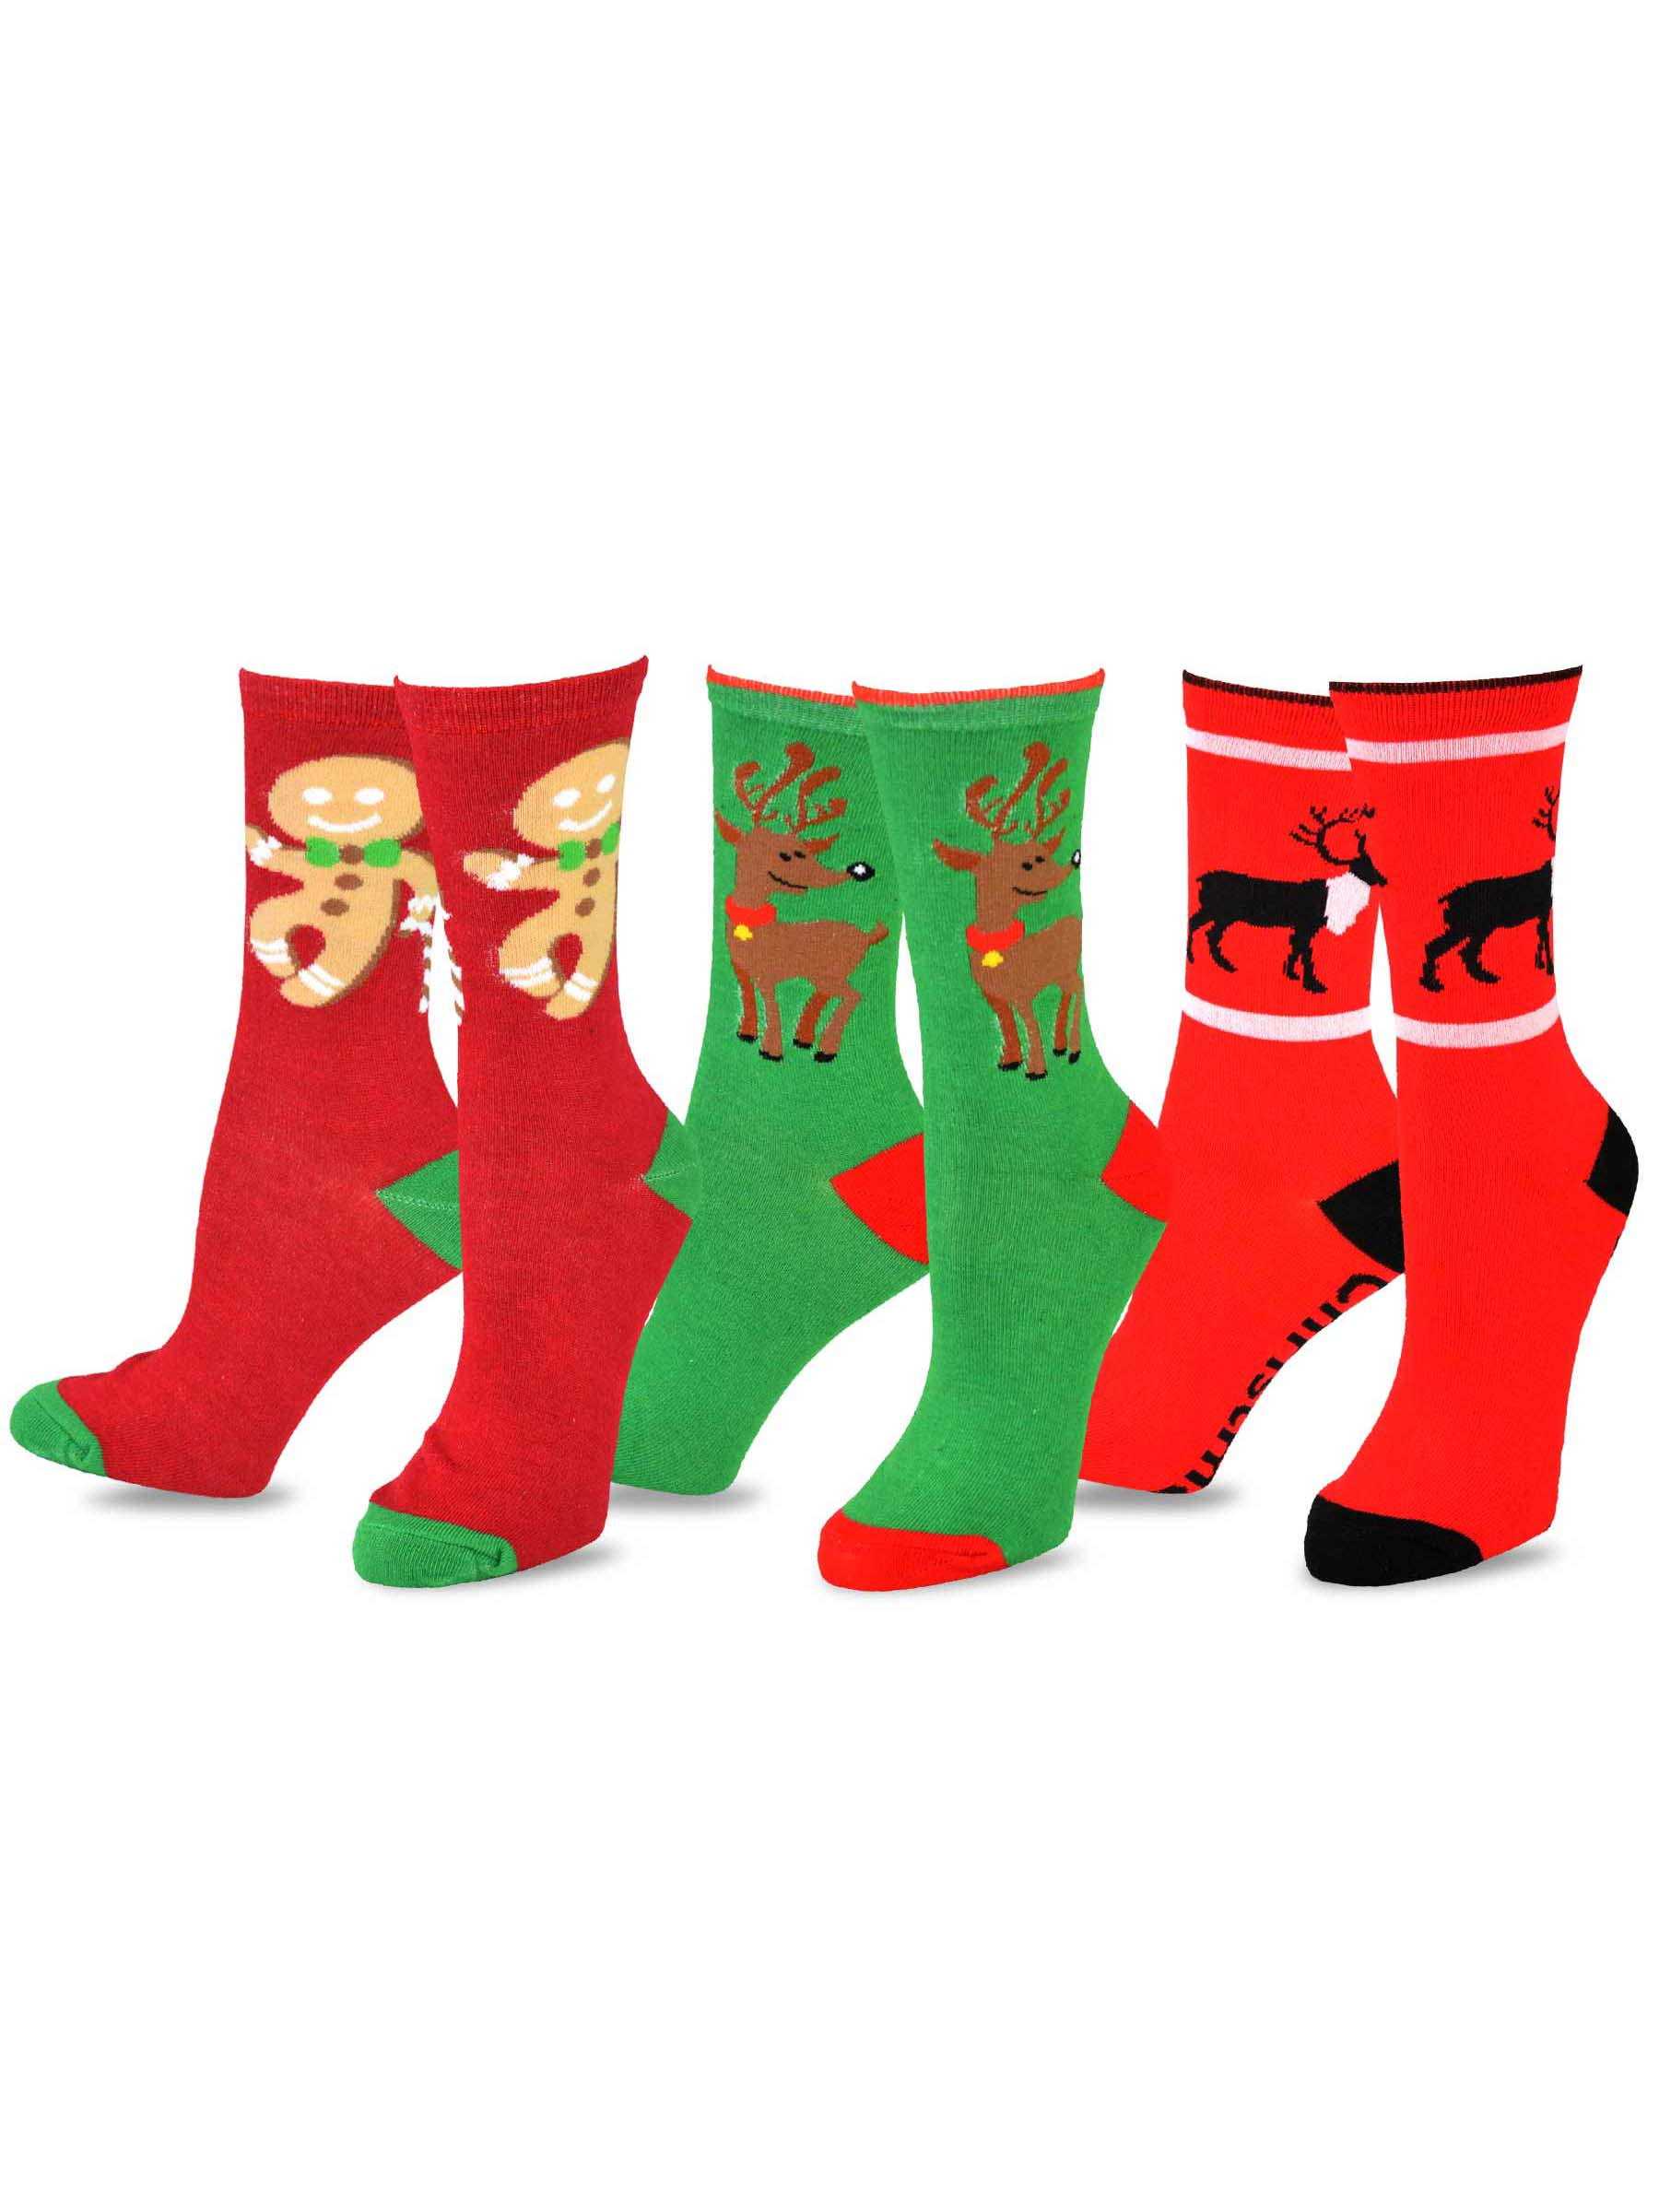 TeeHee and Holiday Fun Crew Socks for Women 3-Pack